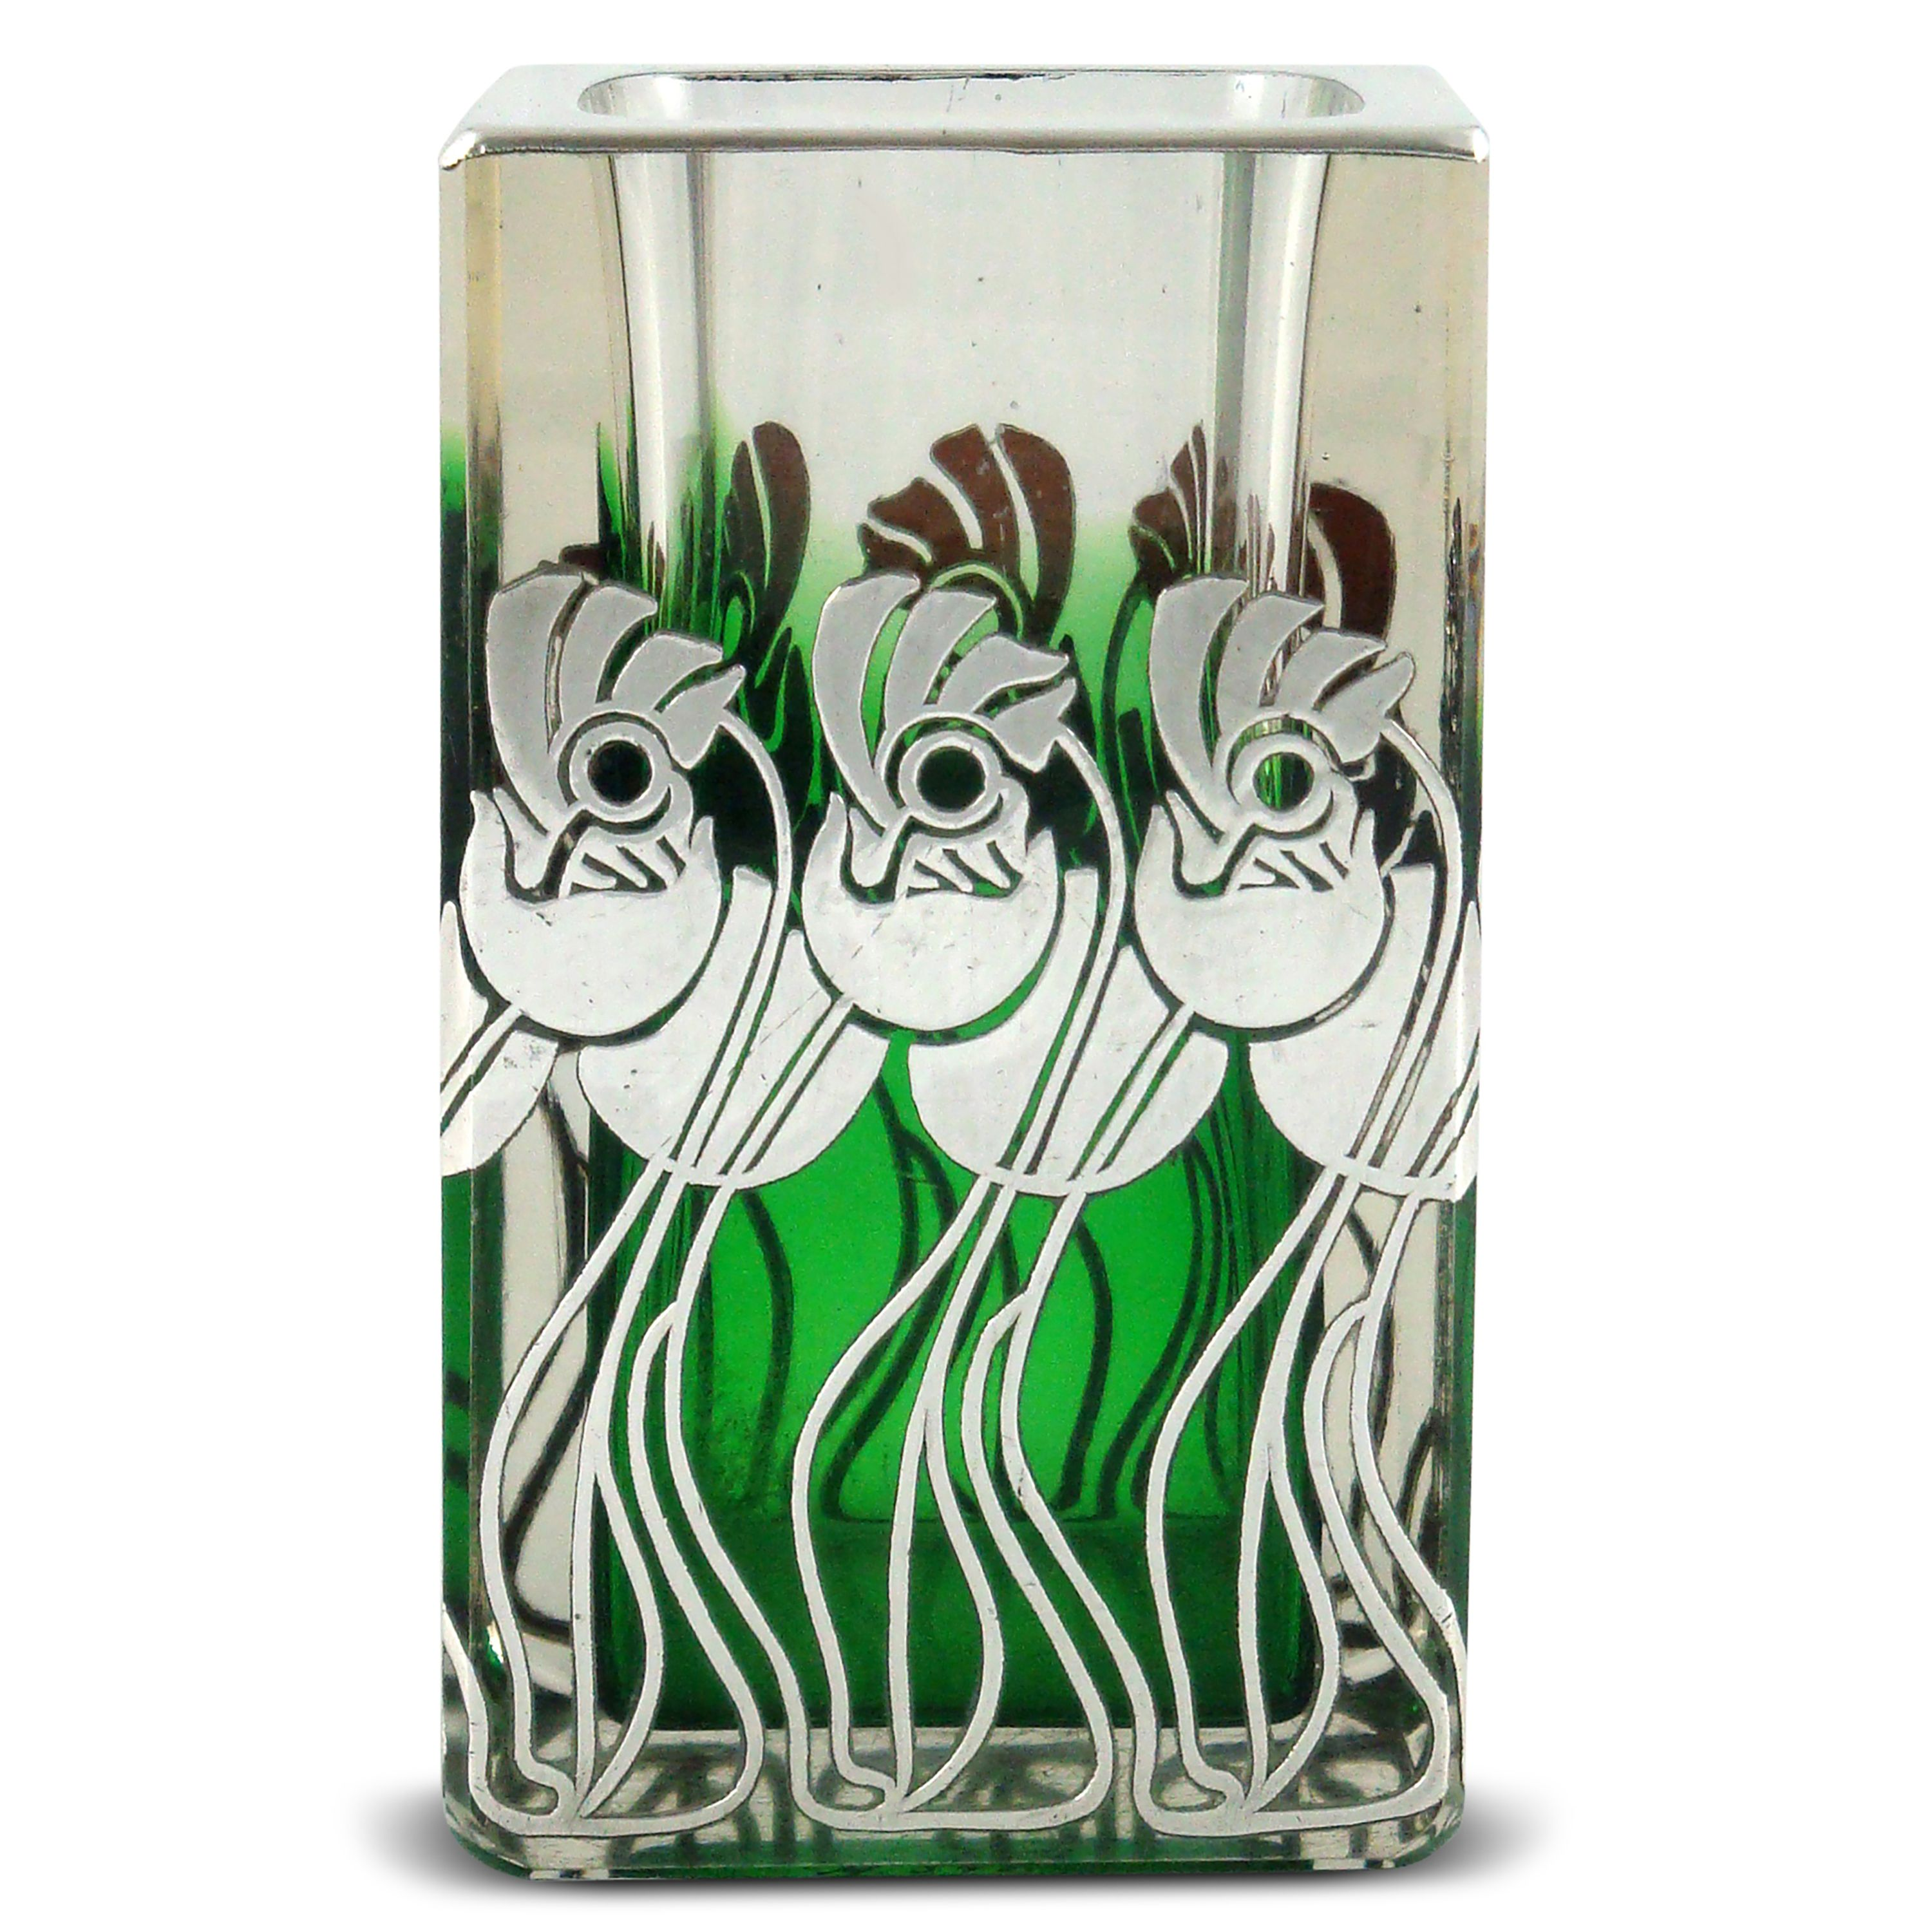 Art nouveau glass vase shading from green to clear with silver art nouveau glass vase shading from green to clear with silver overlay in the style of reviewsmspy